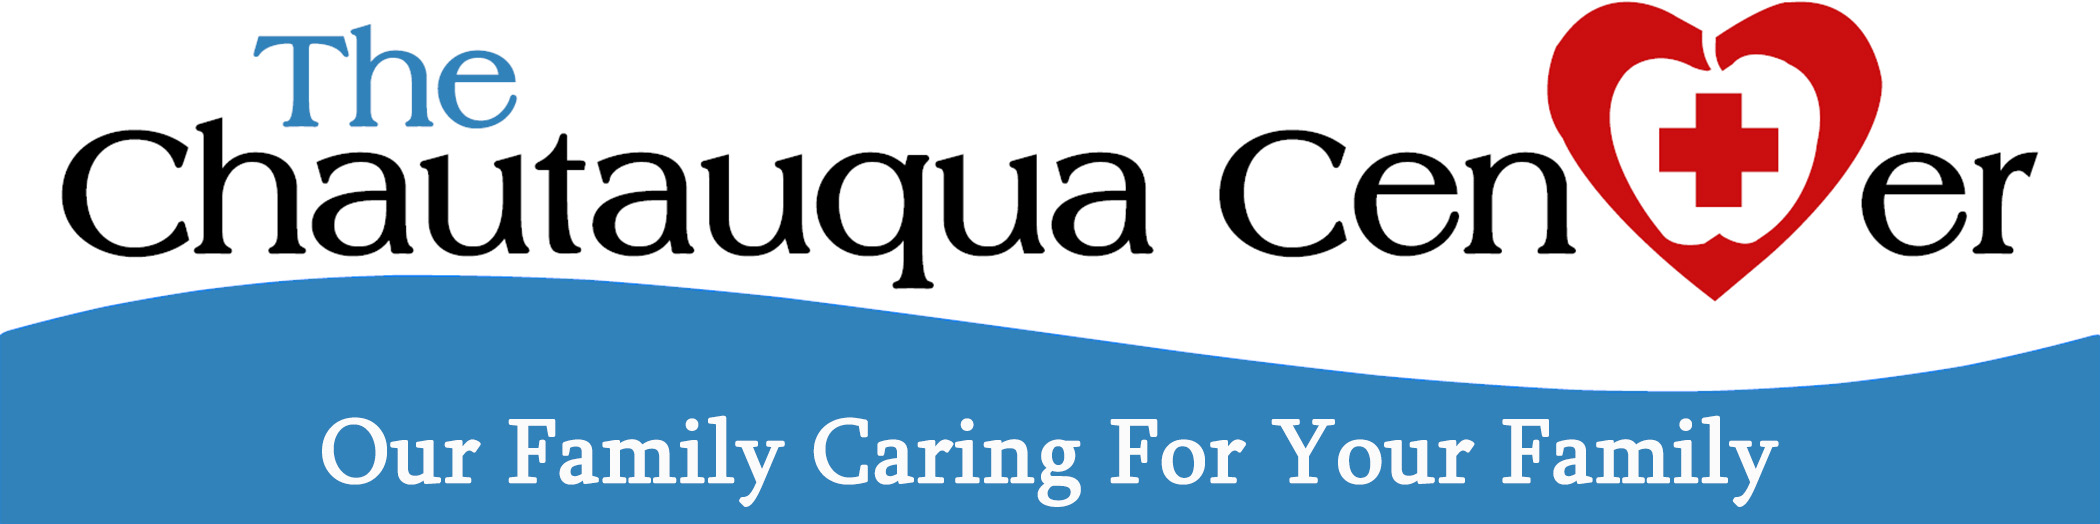 The Chautauqua Center - Dunkirk Primary Care and Behavioral Health